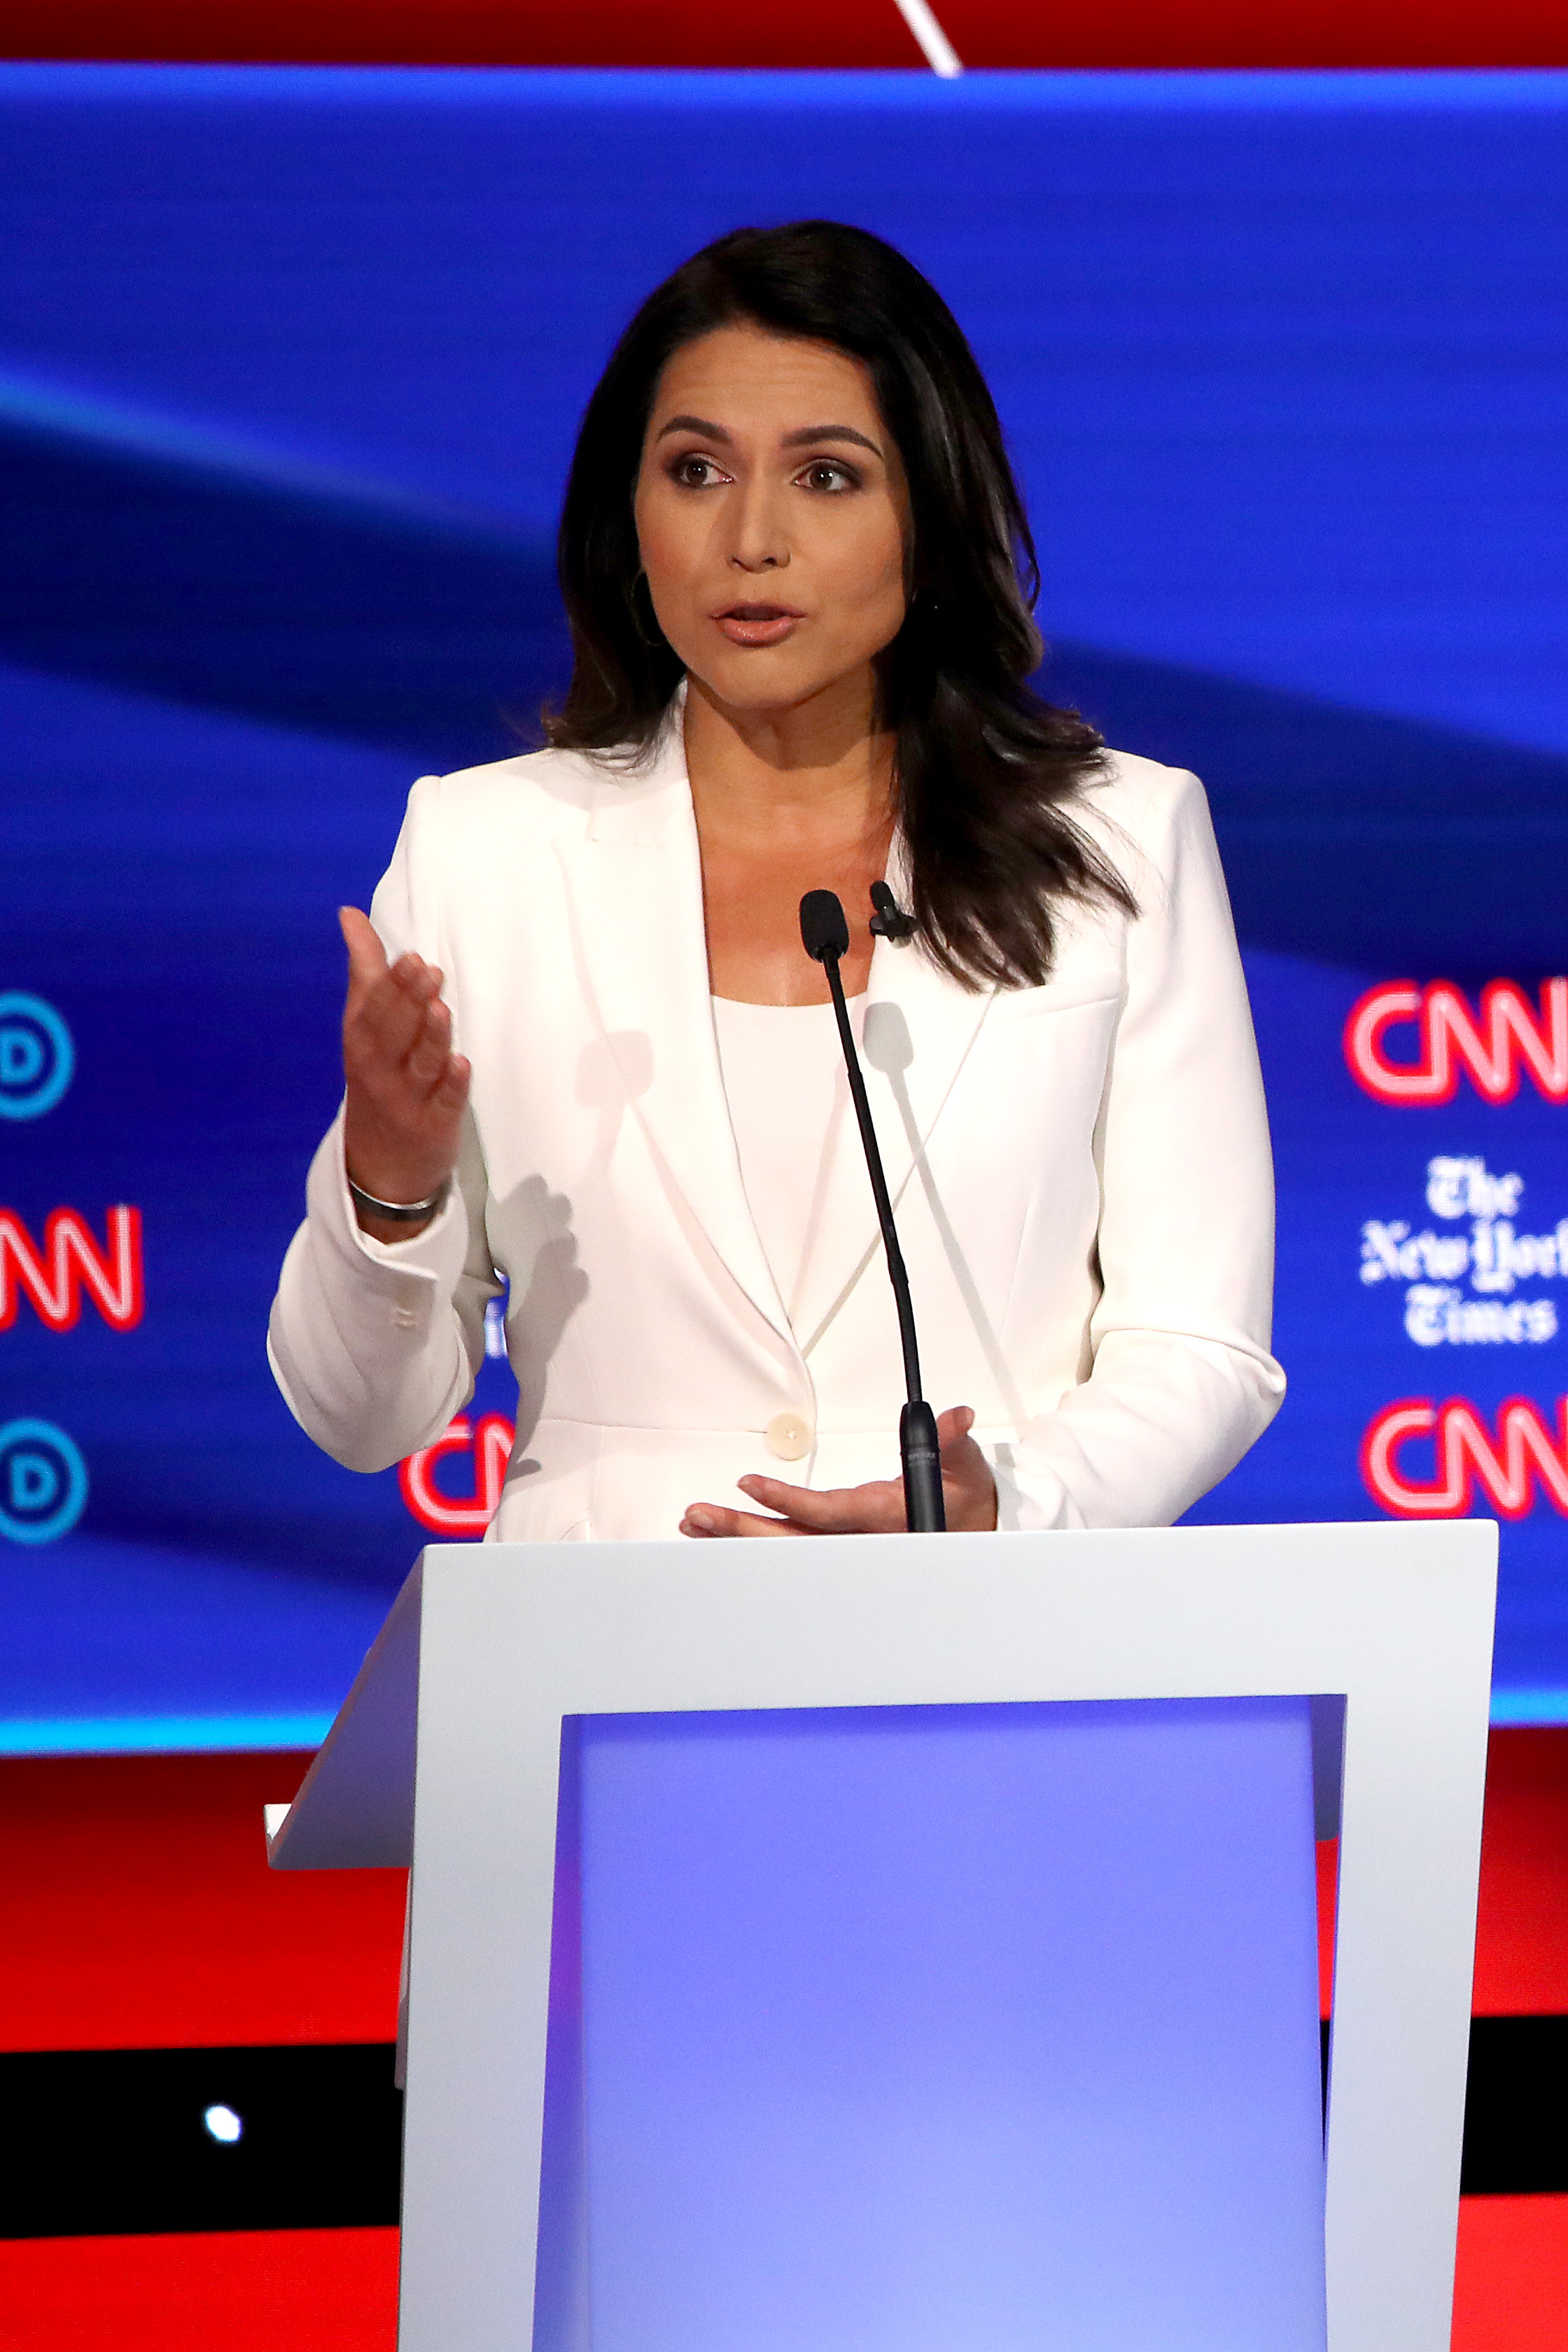 Rep. Tulsi Gabbard (D-HI) speaks during the Democratic Presidential Debate at Otterbein University on October 15, 2019 in Westerville, Ohio.(Win McNamee/Getty Images)